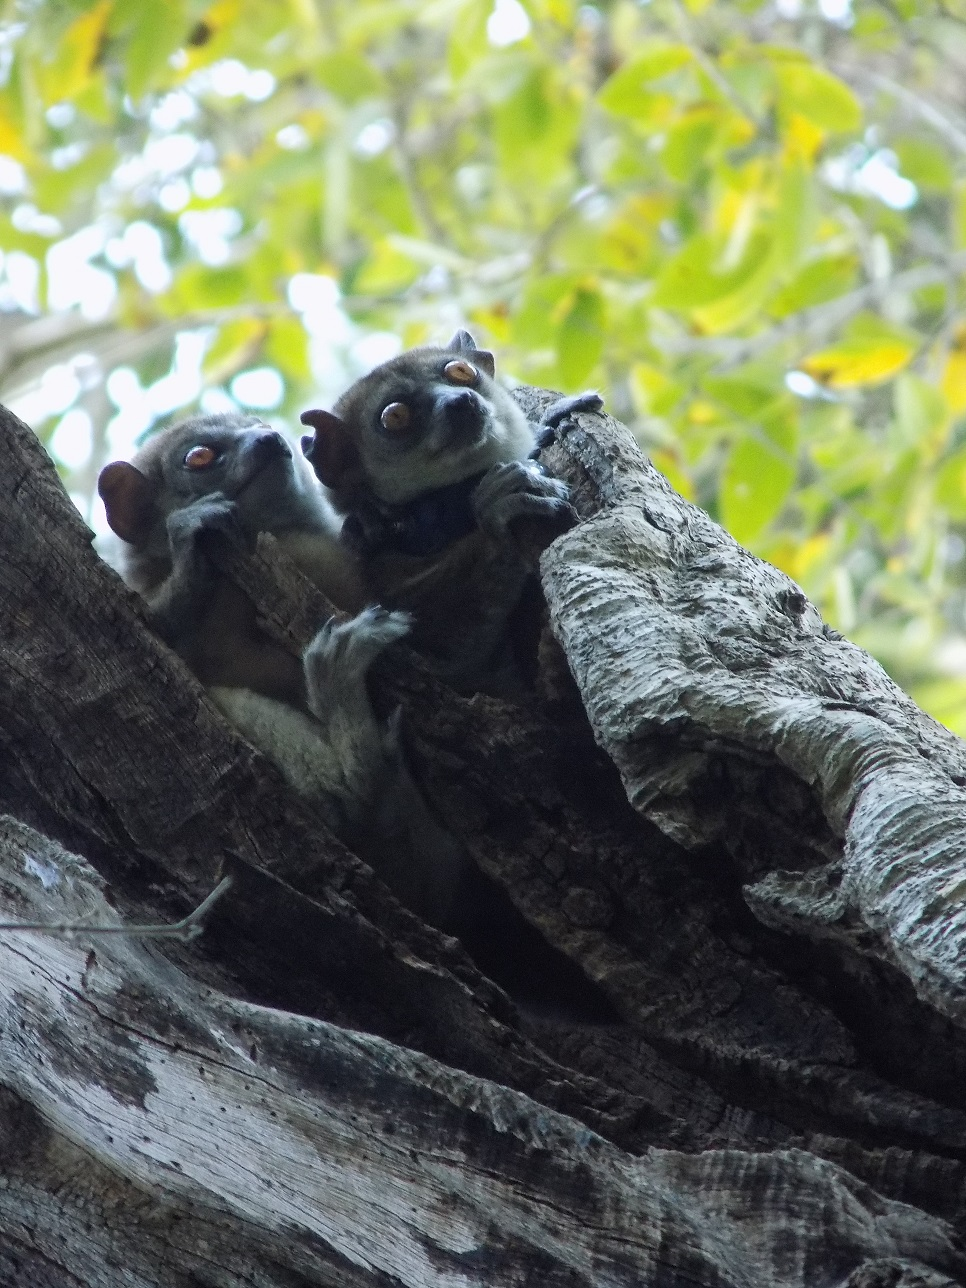 Baby Northern Sportive Lemur and her mother